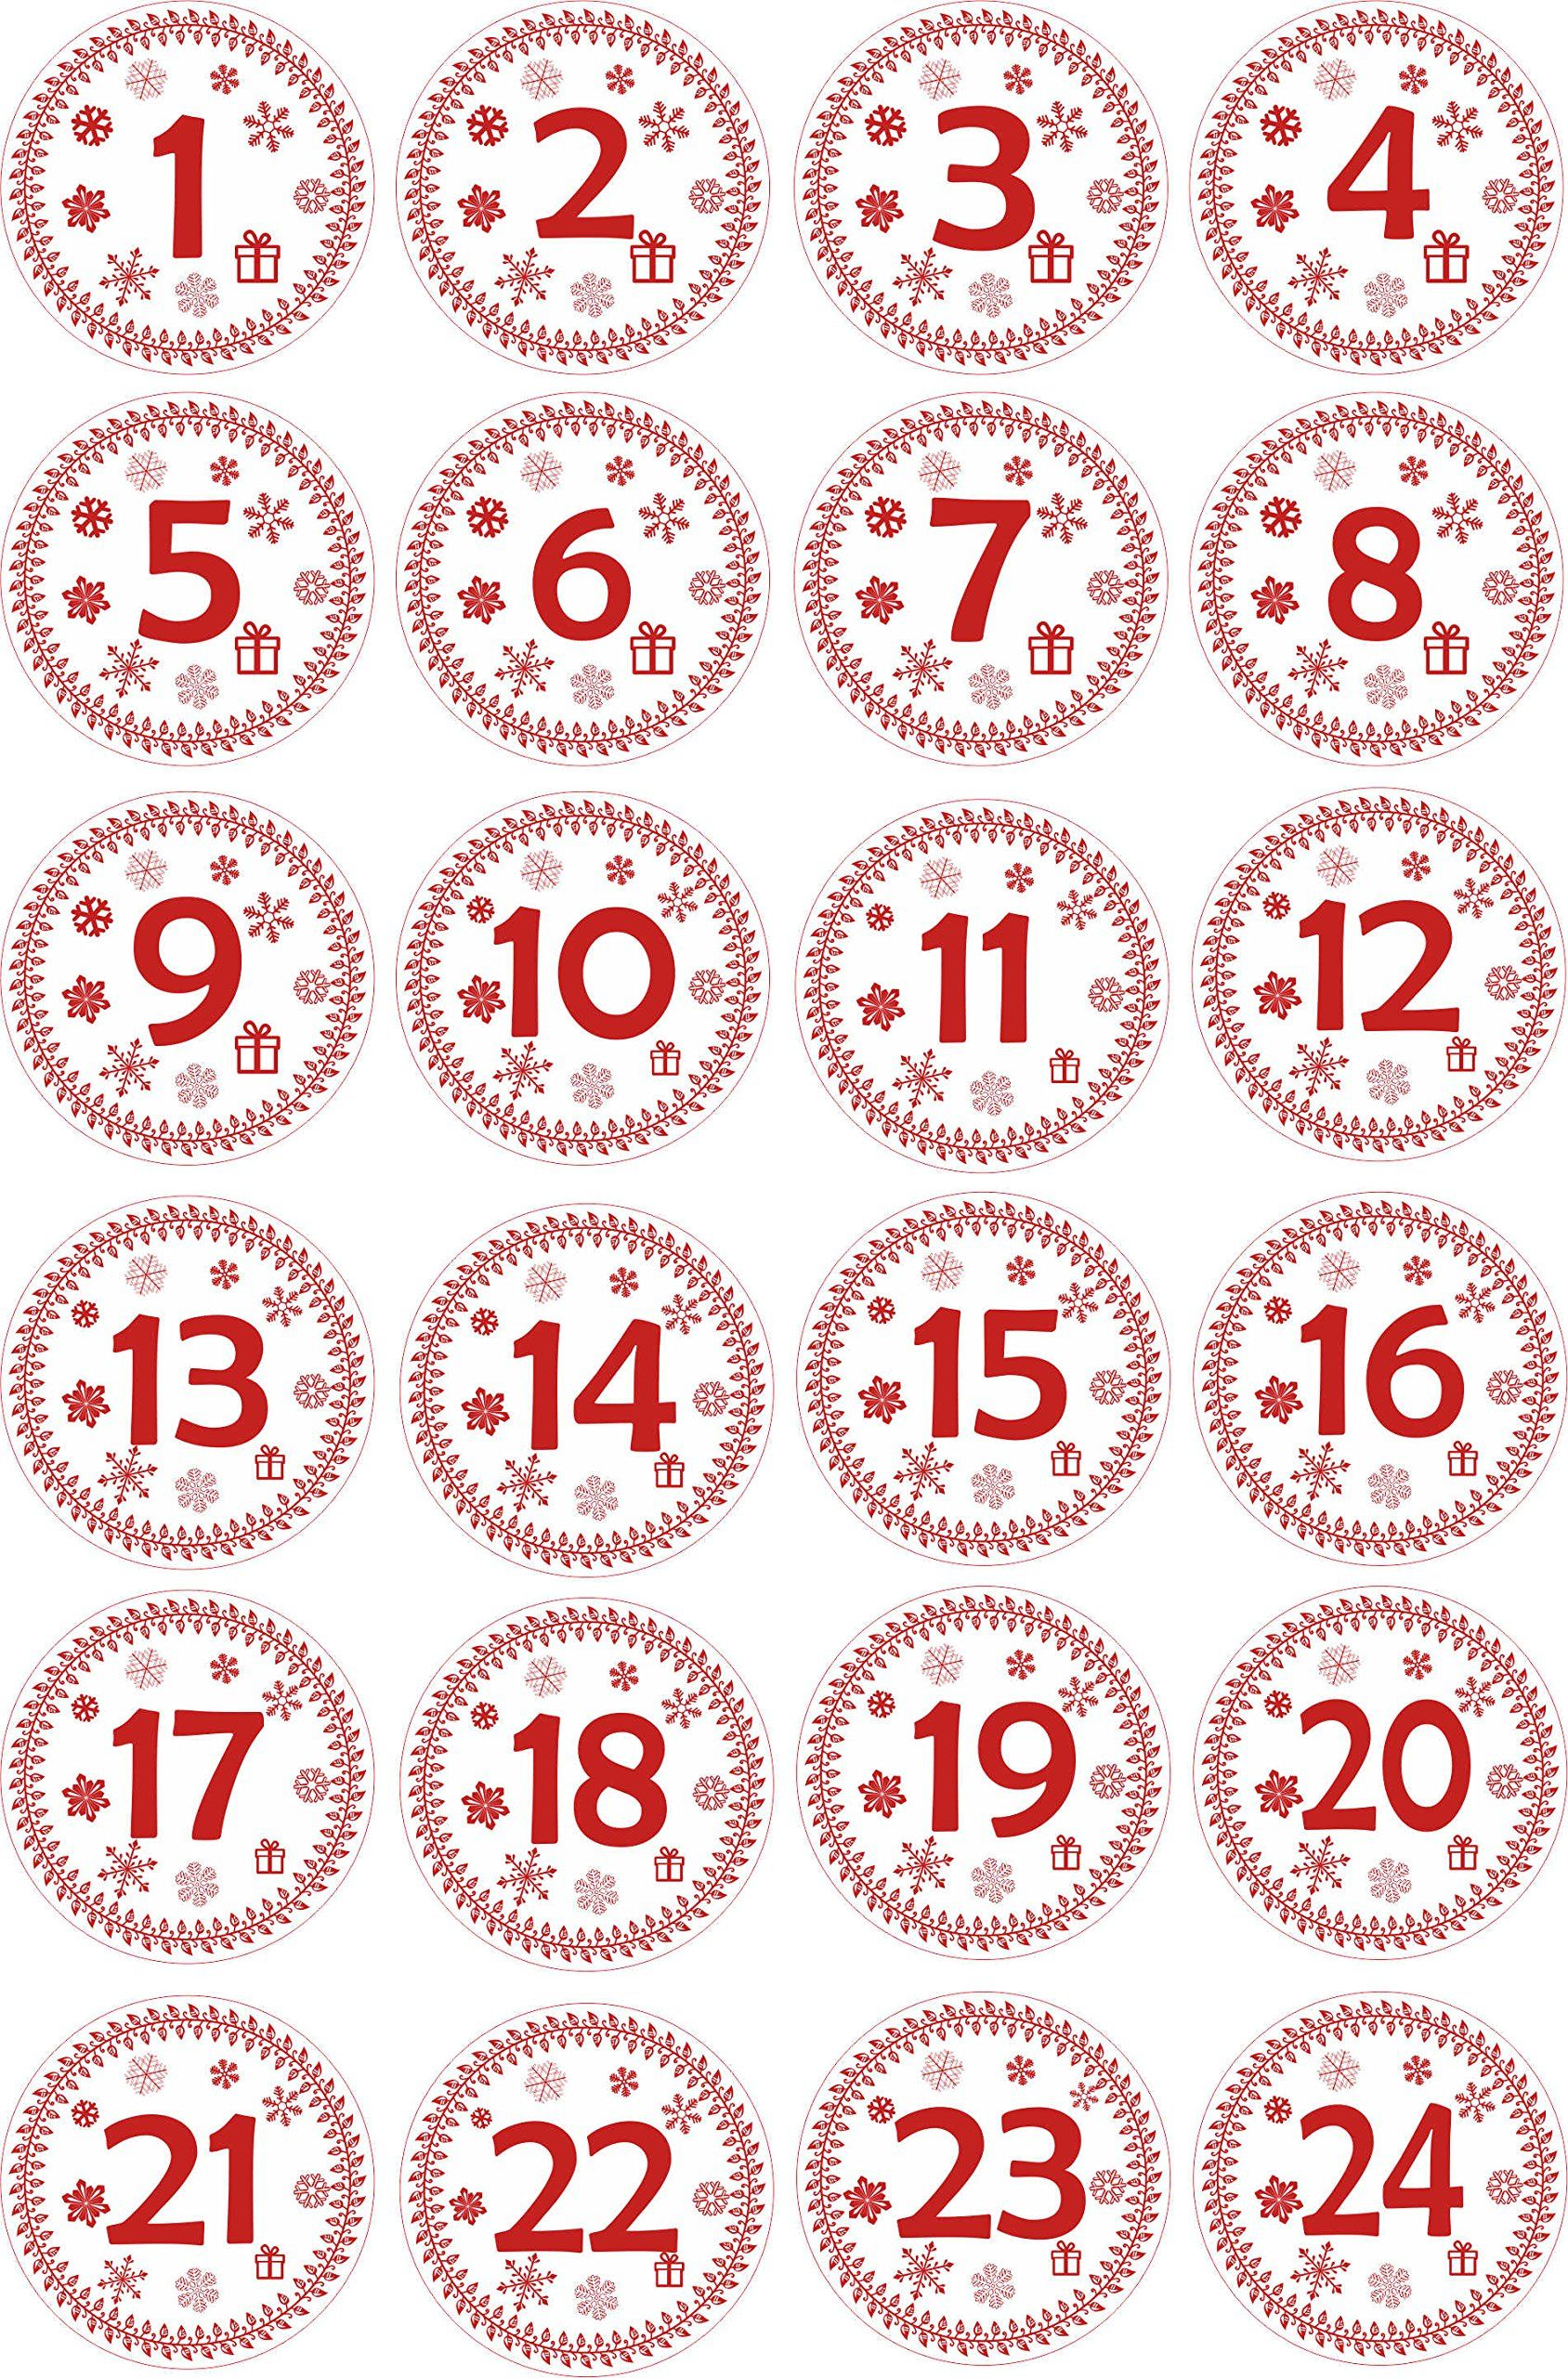 Indigos ug advent calendar numbers stickers 1 to 24 red vintage labels stickers christmas calendar advent round diy to stick on make